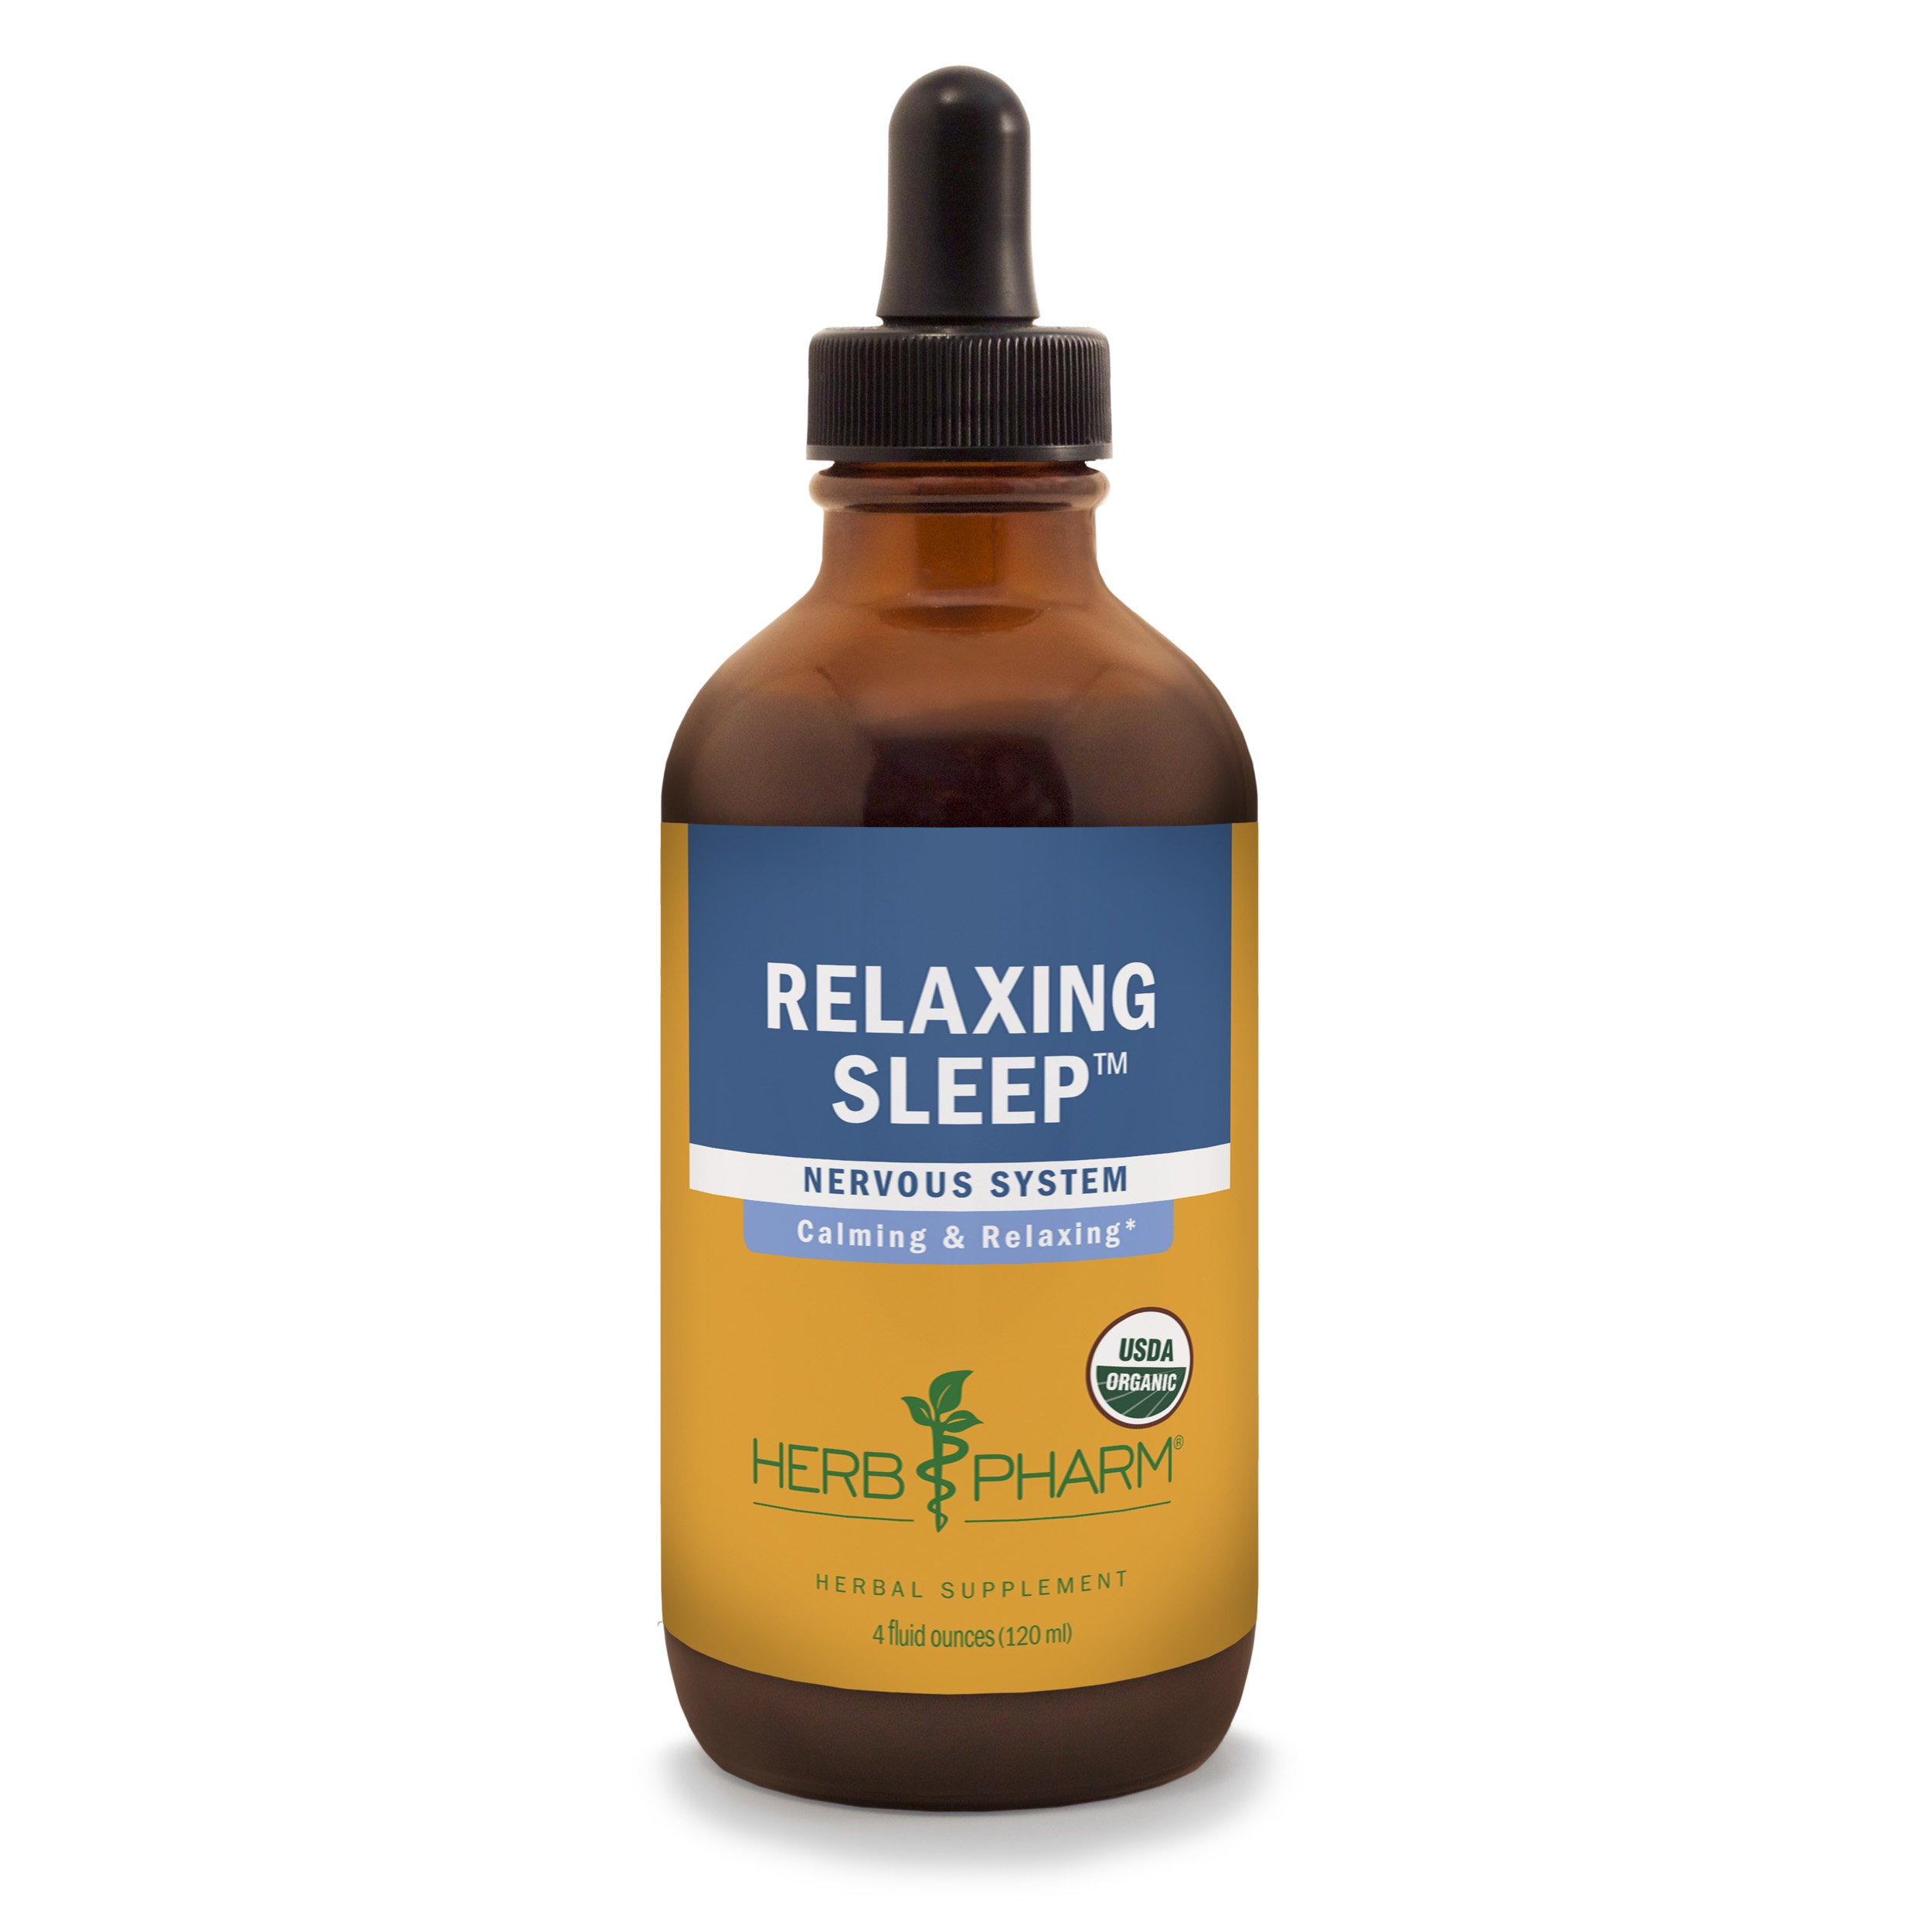 Herb Pharm Relaxing Sleep Herbal Formula with Valerian Liquid Extract - 4 Ounce by Herb Pharm (Image #1)